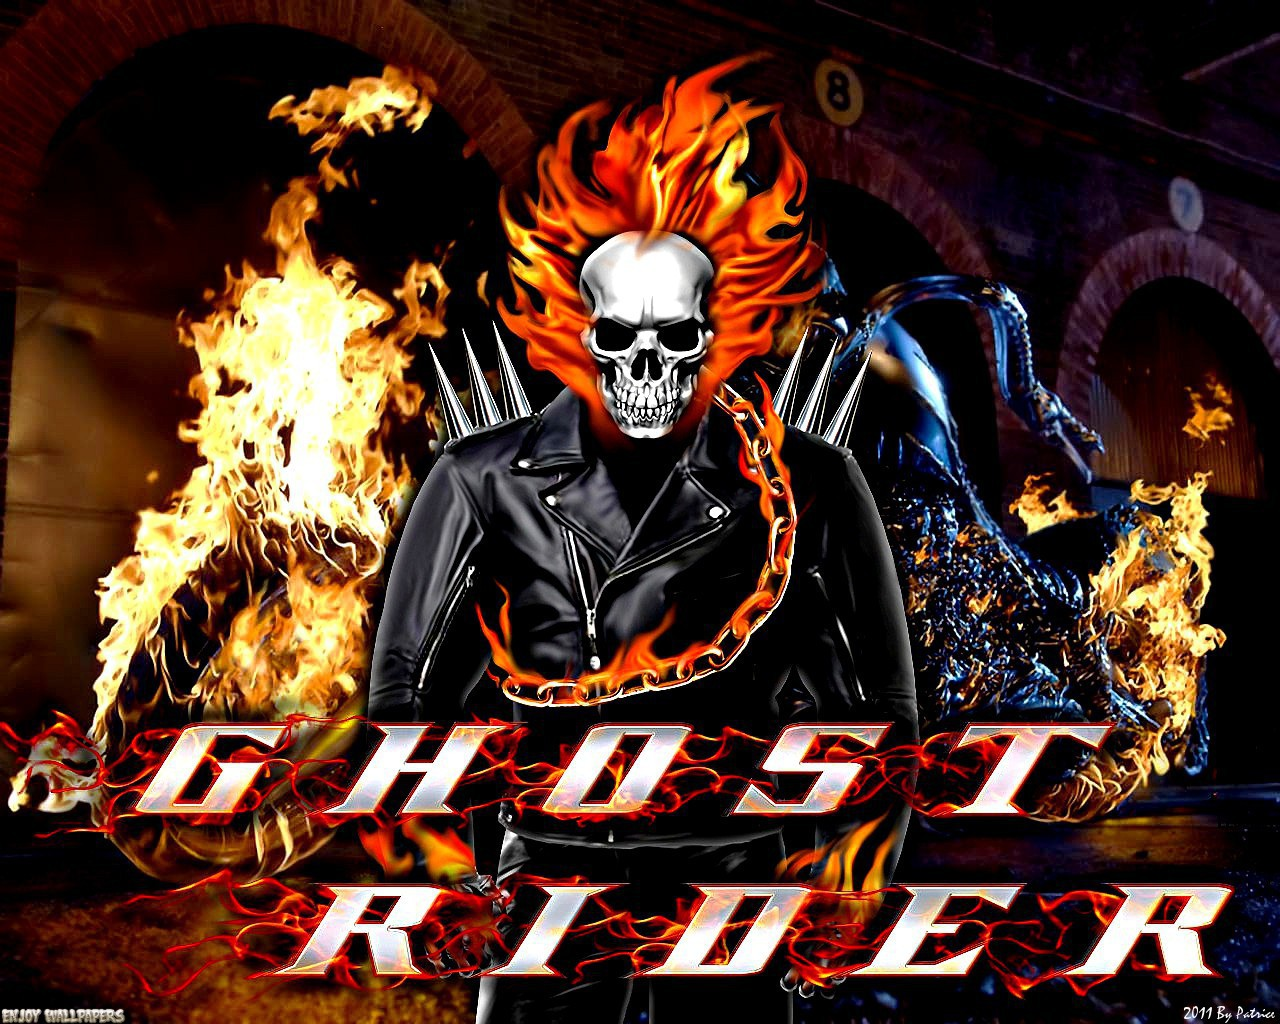 wallpaper wallpaper ghost rider 2 ghost rider hd wallpapers ghost 1280x1024